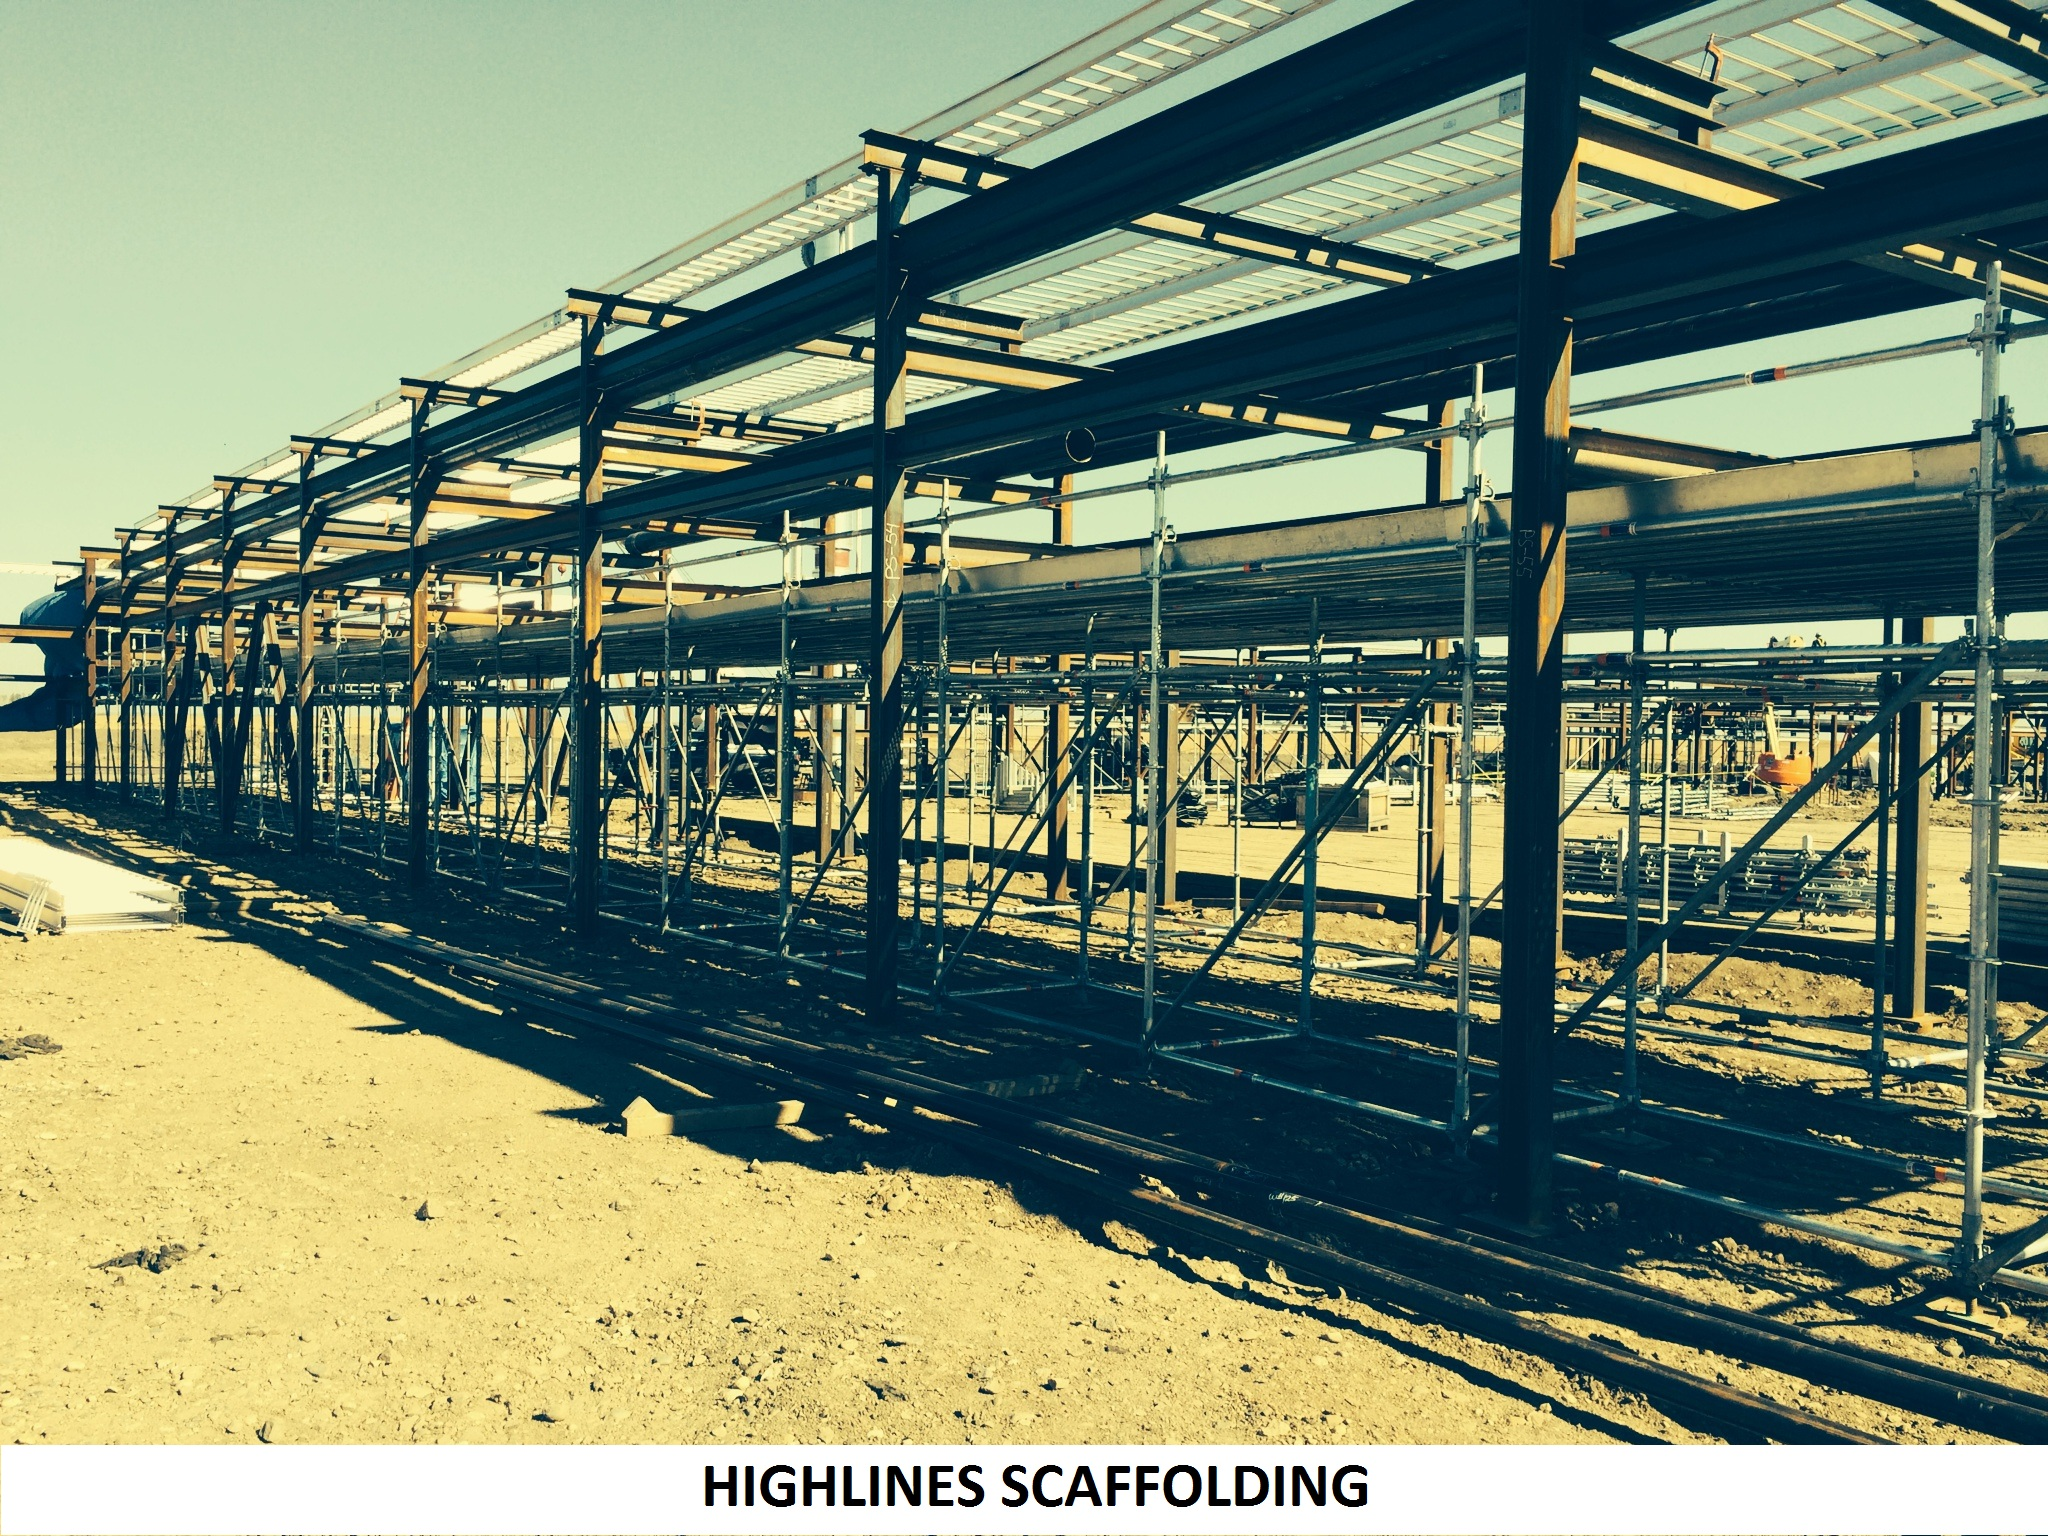 Scaffolding for Highlines